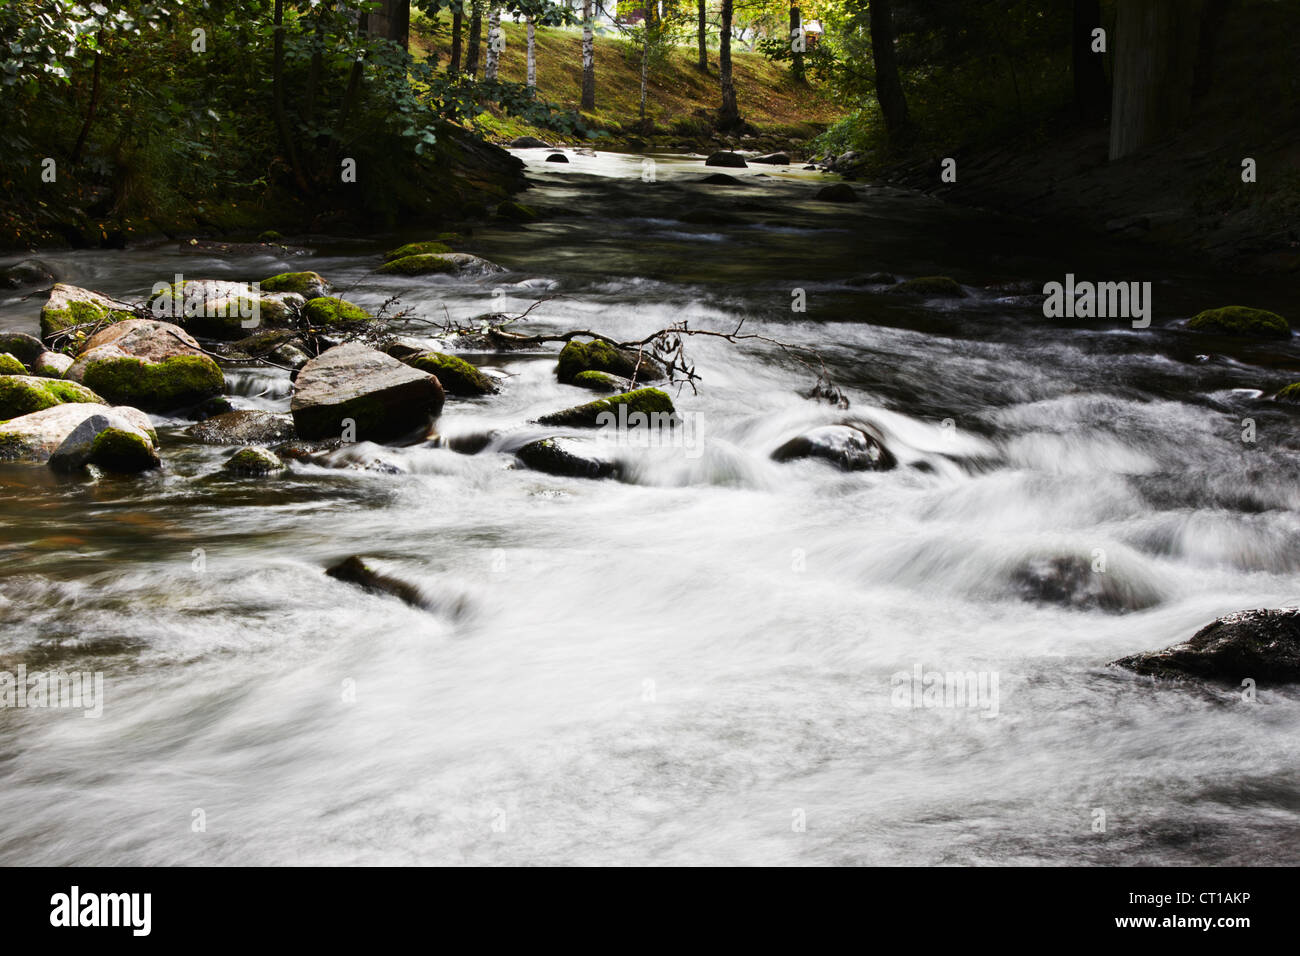 Blurred view of river rushing over rocks - Stock Image